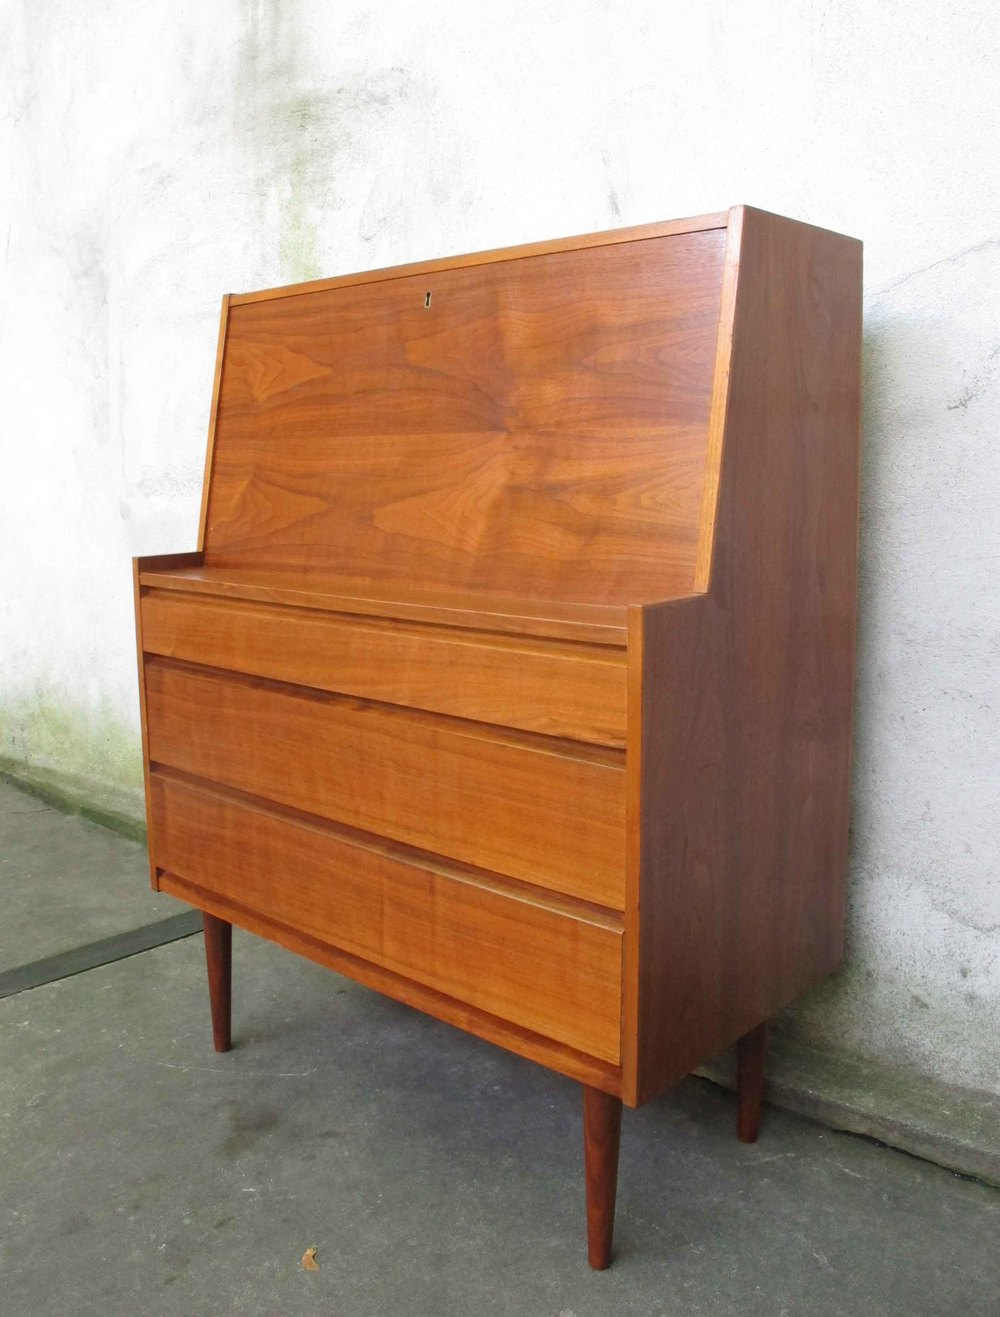 DANISH MODERN TEAK DROP DOWN SECRETARY DESK